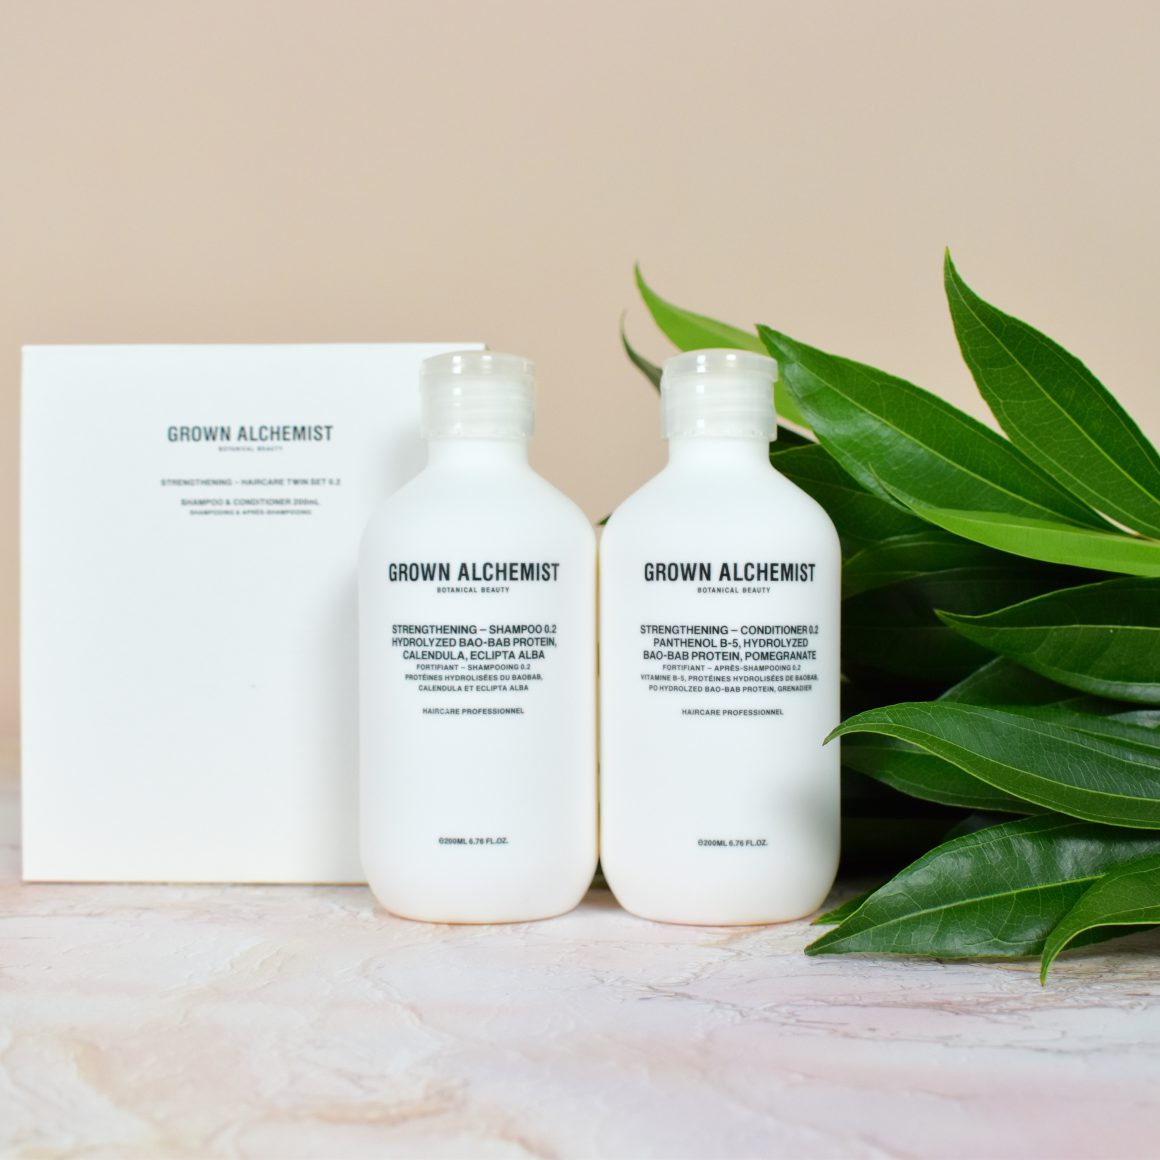 grown-alchemist-strengthening-haircare-twin-set